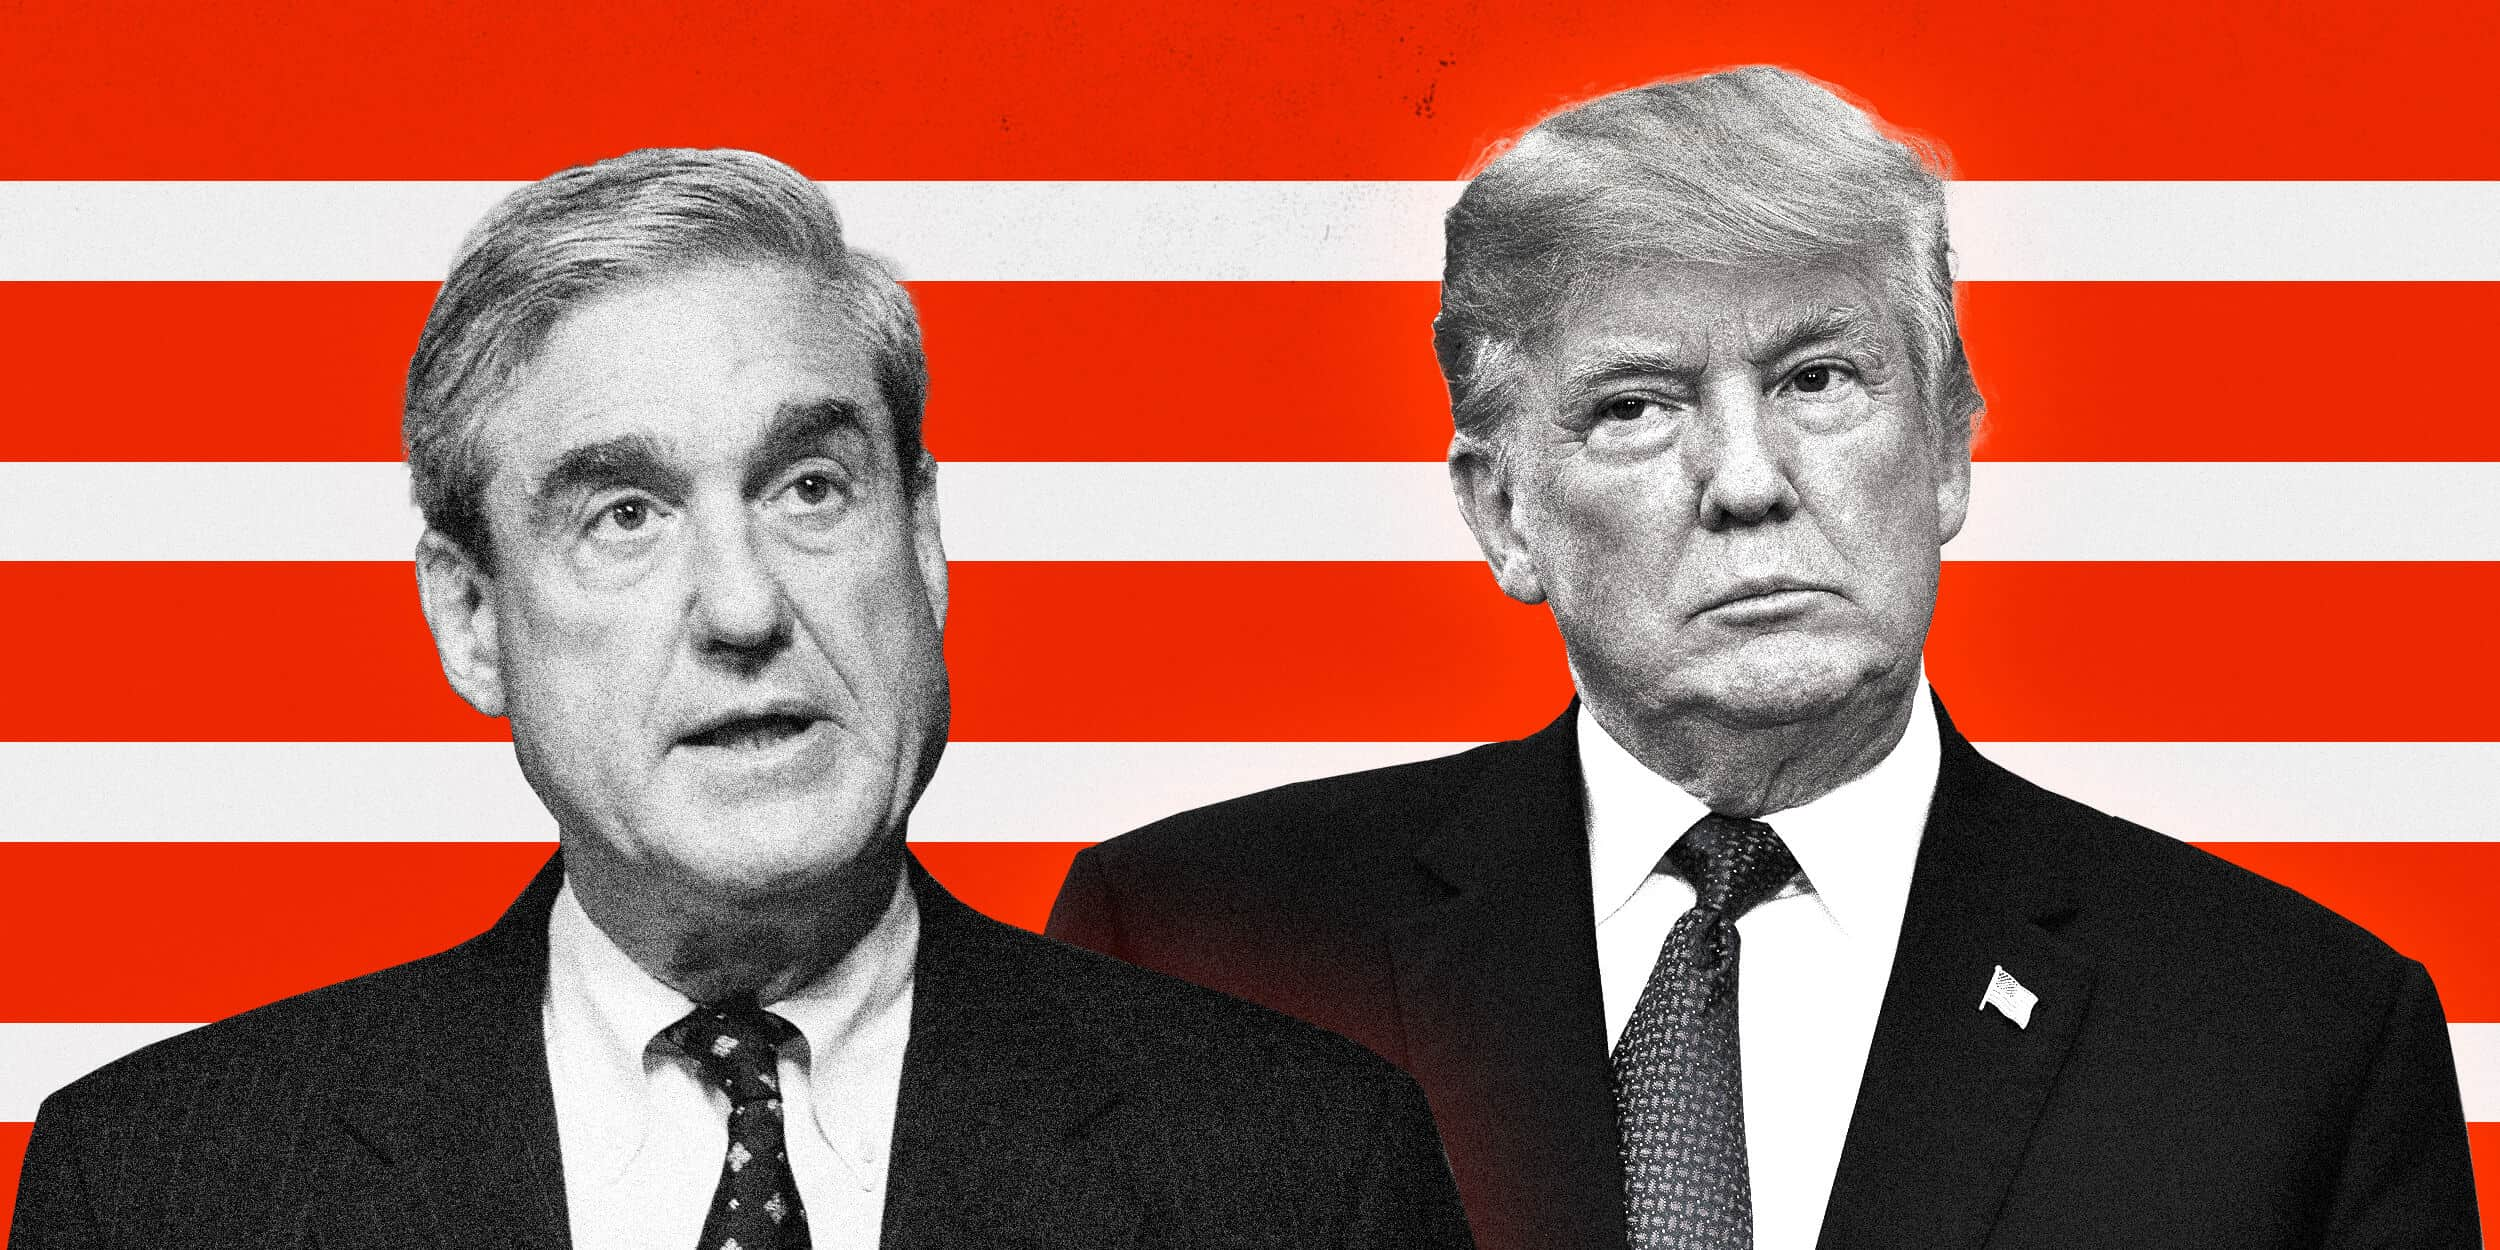 Russia Meddled with US Presidential Election Using Bitcoin- Mueller Report